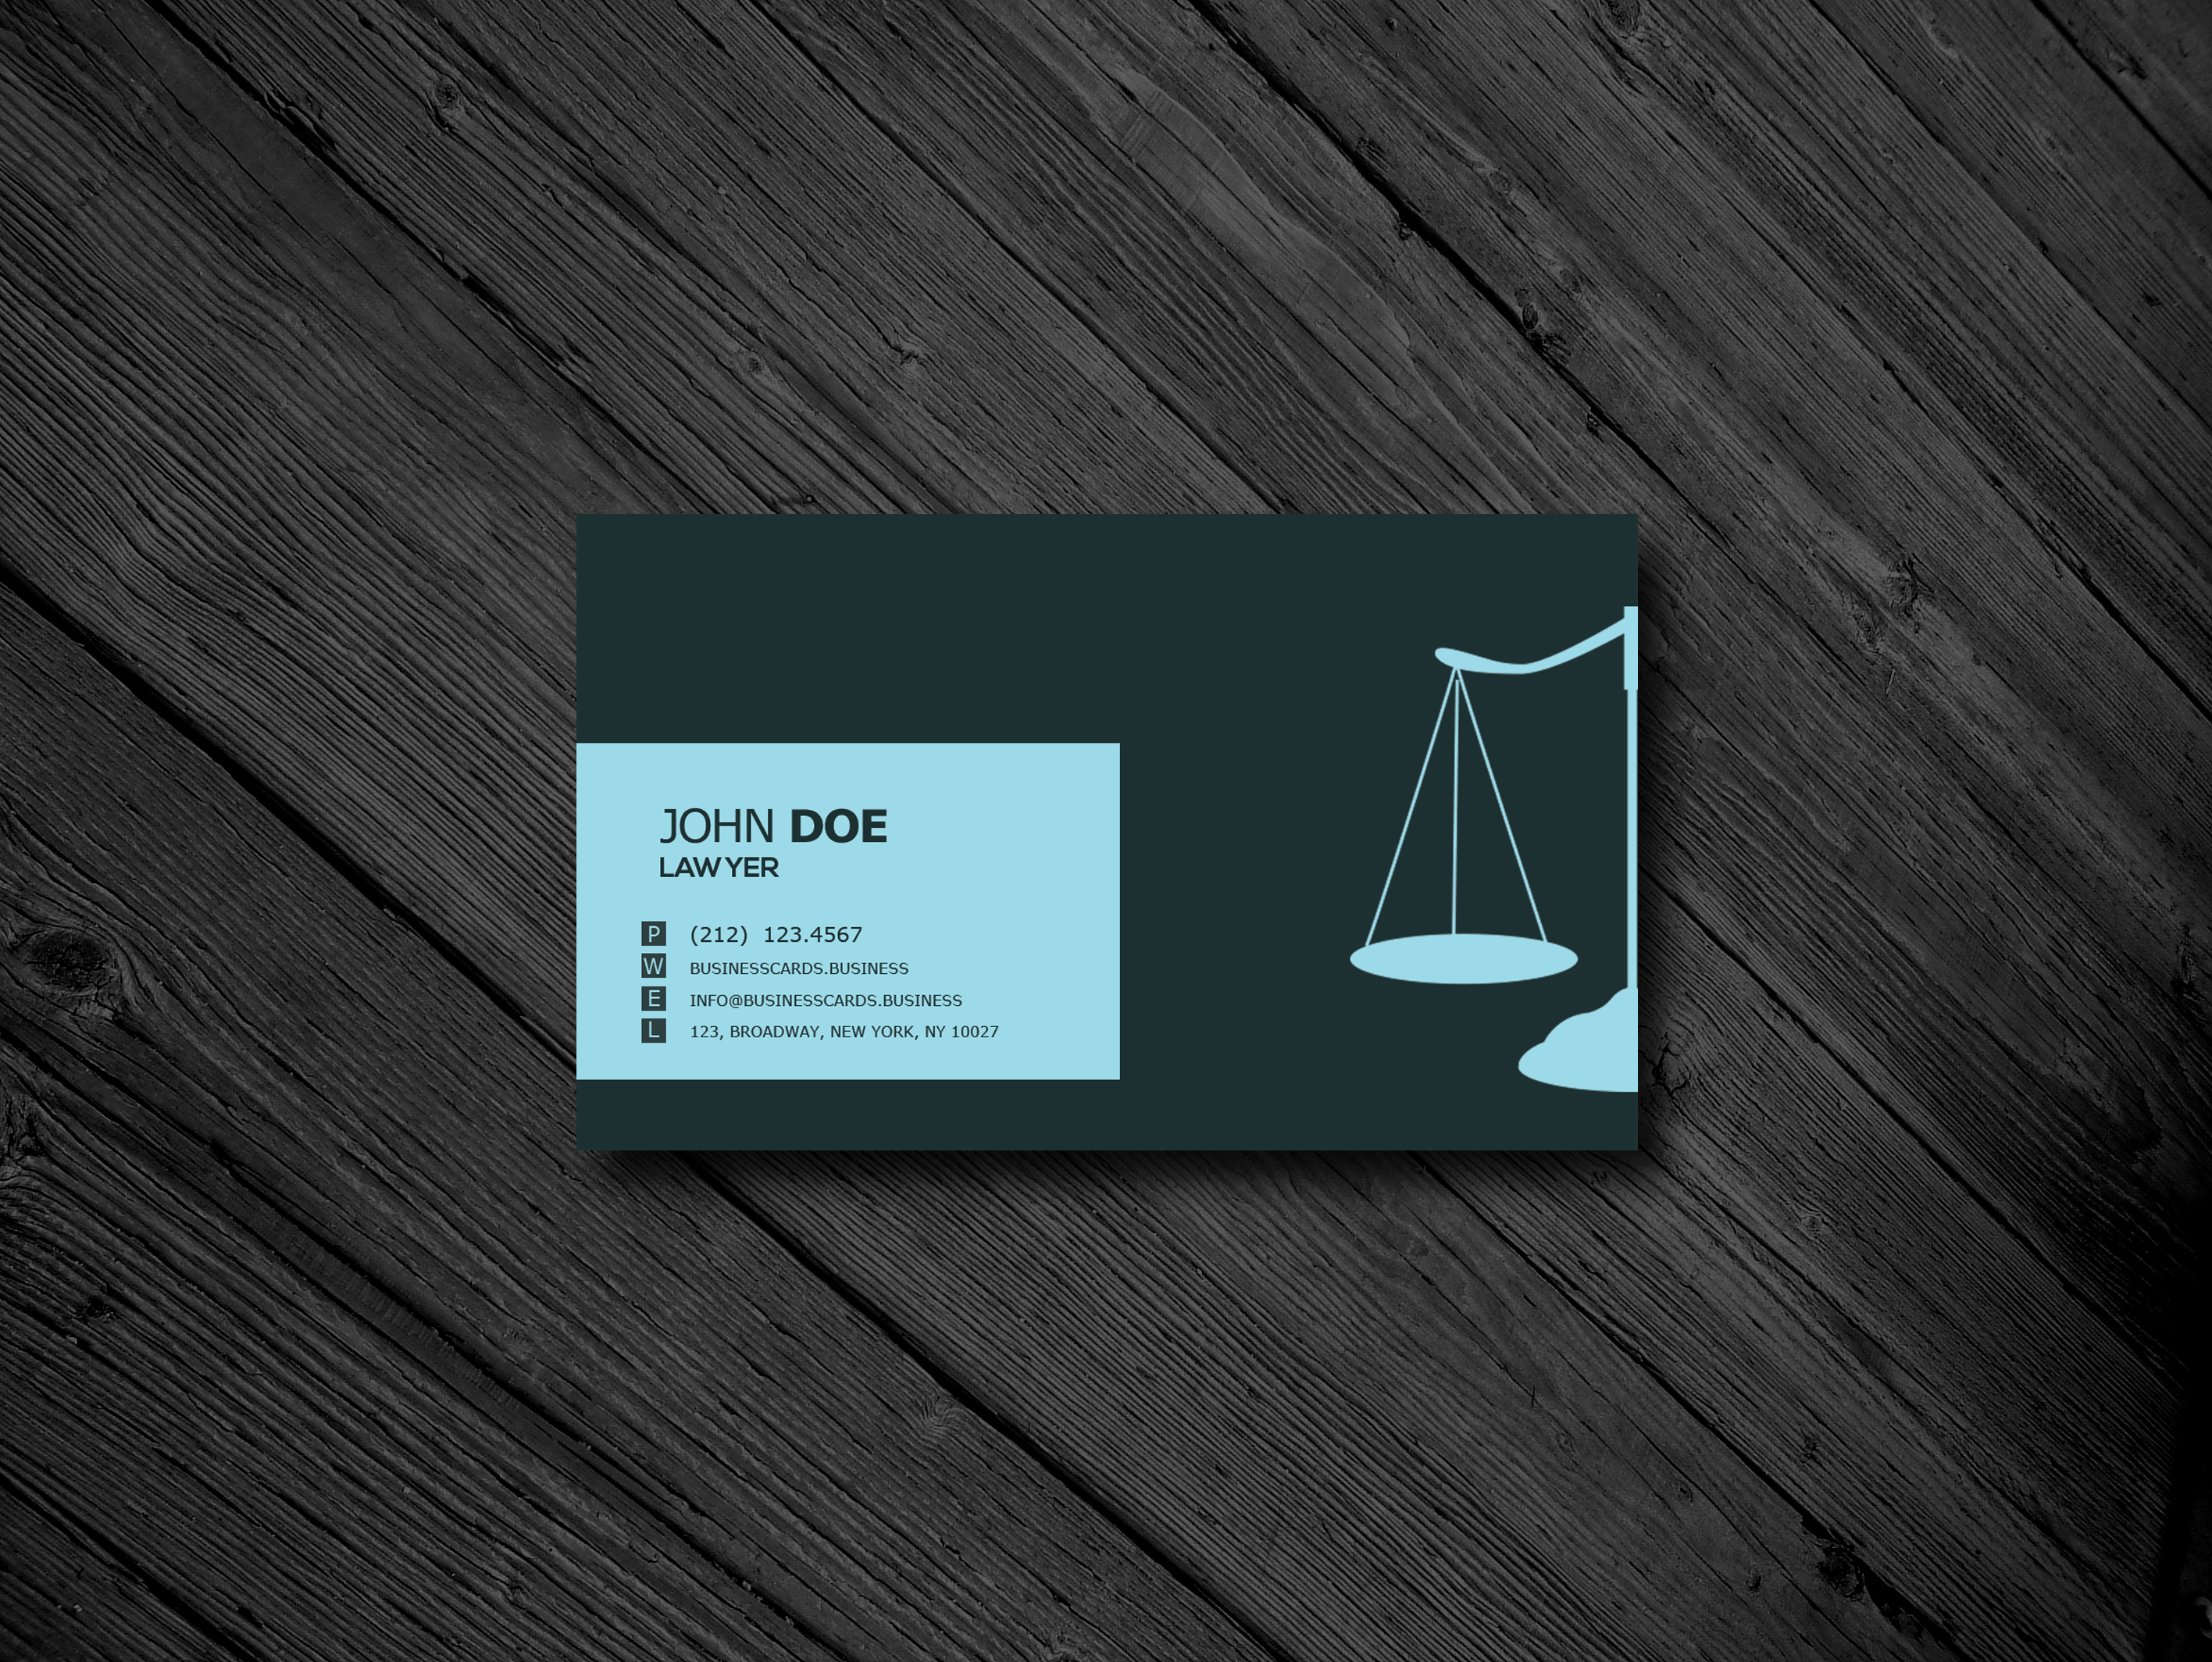 Free Business Card Templates Business Cards Templates - Business cards psd templates